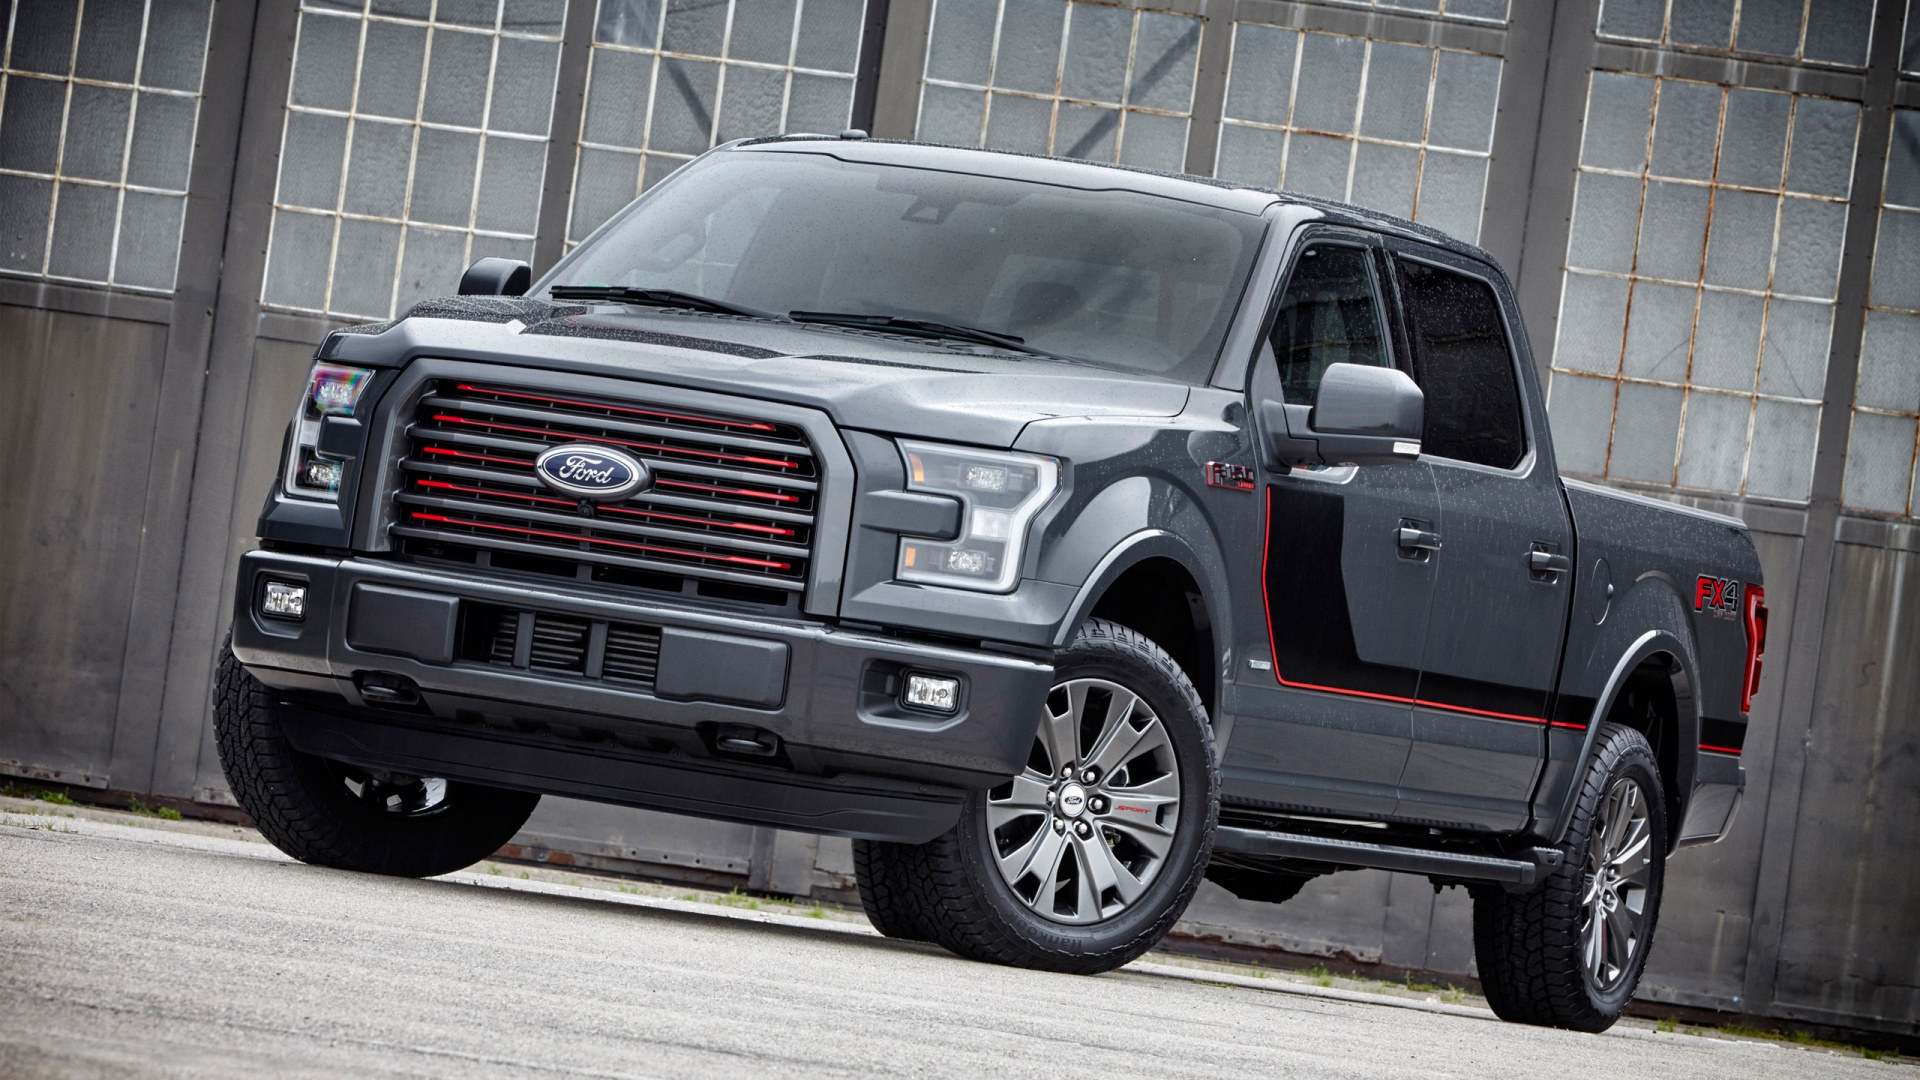 Ford F 150 Lariat Appearance Package Wallpaper HD Car Wallpapers 1920x1080